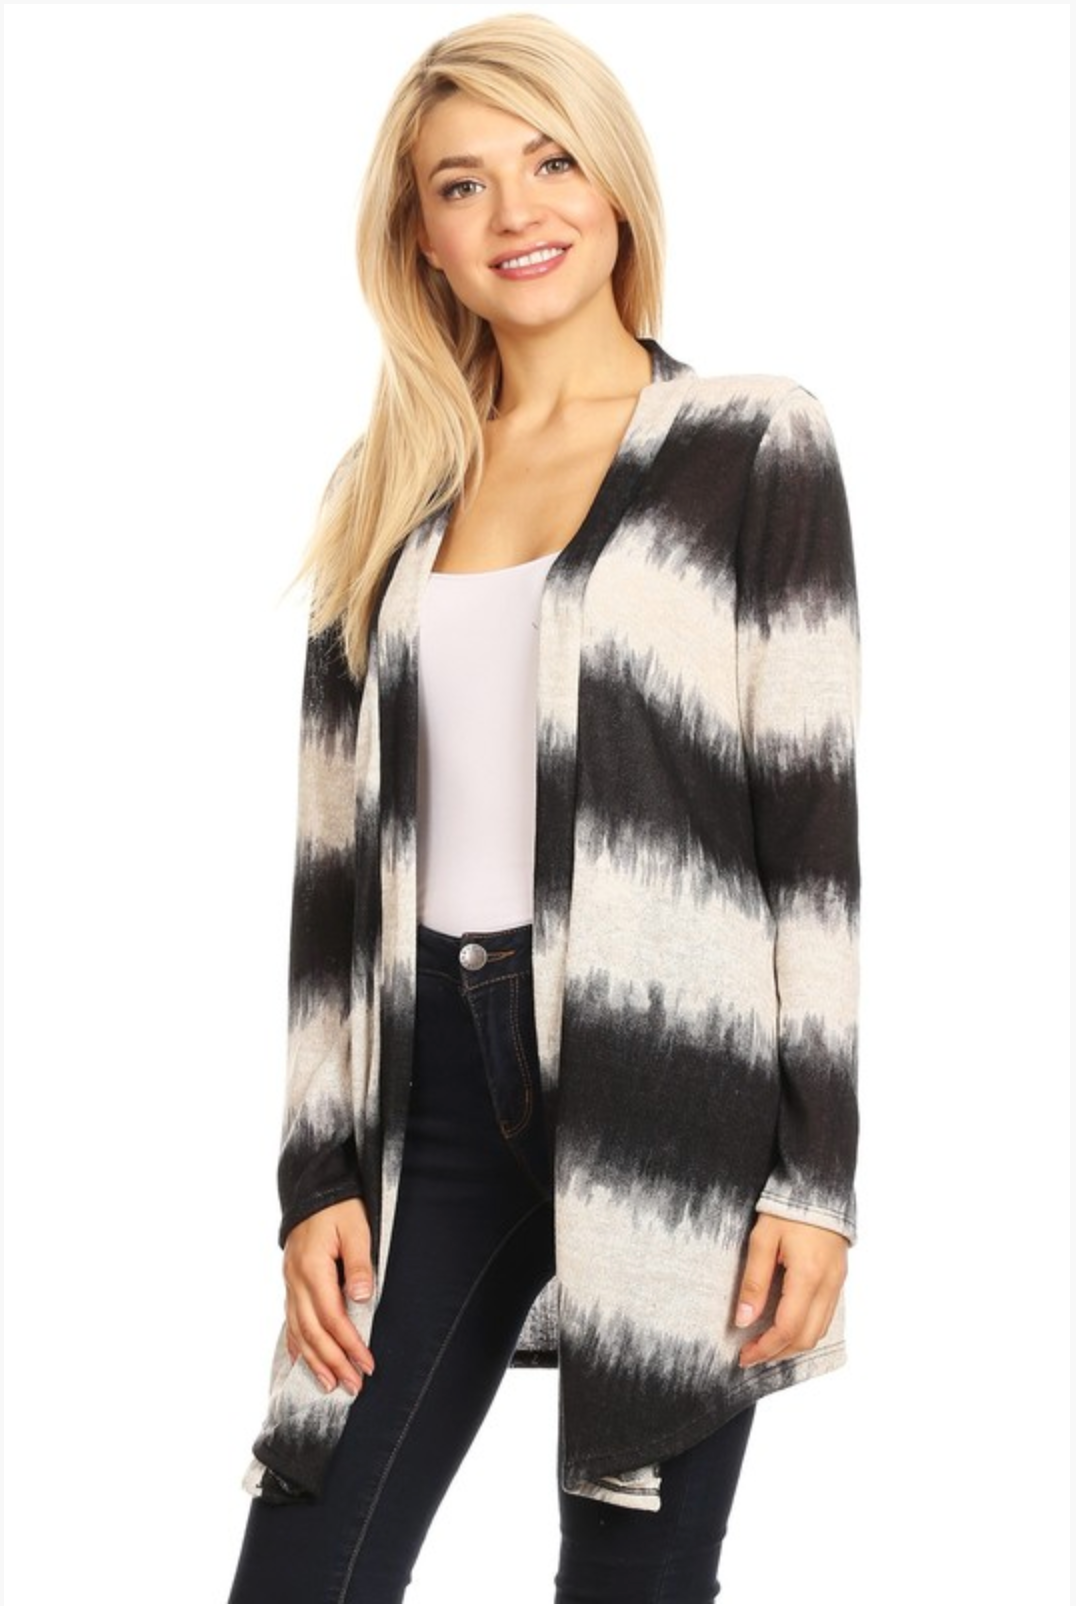 Sunset at Midnight Cardigan - Luxe Personalization Boutique